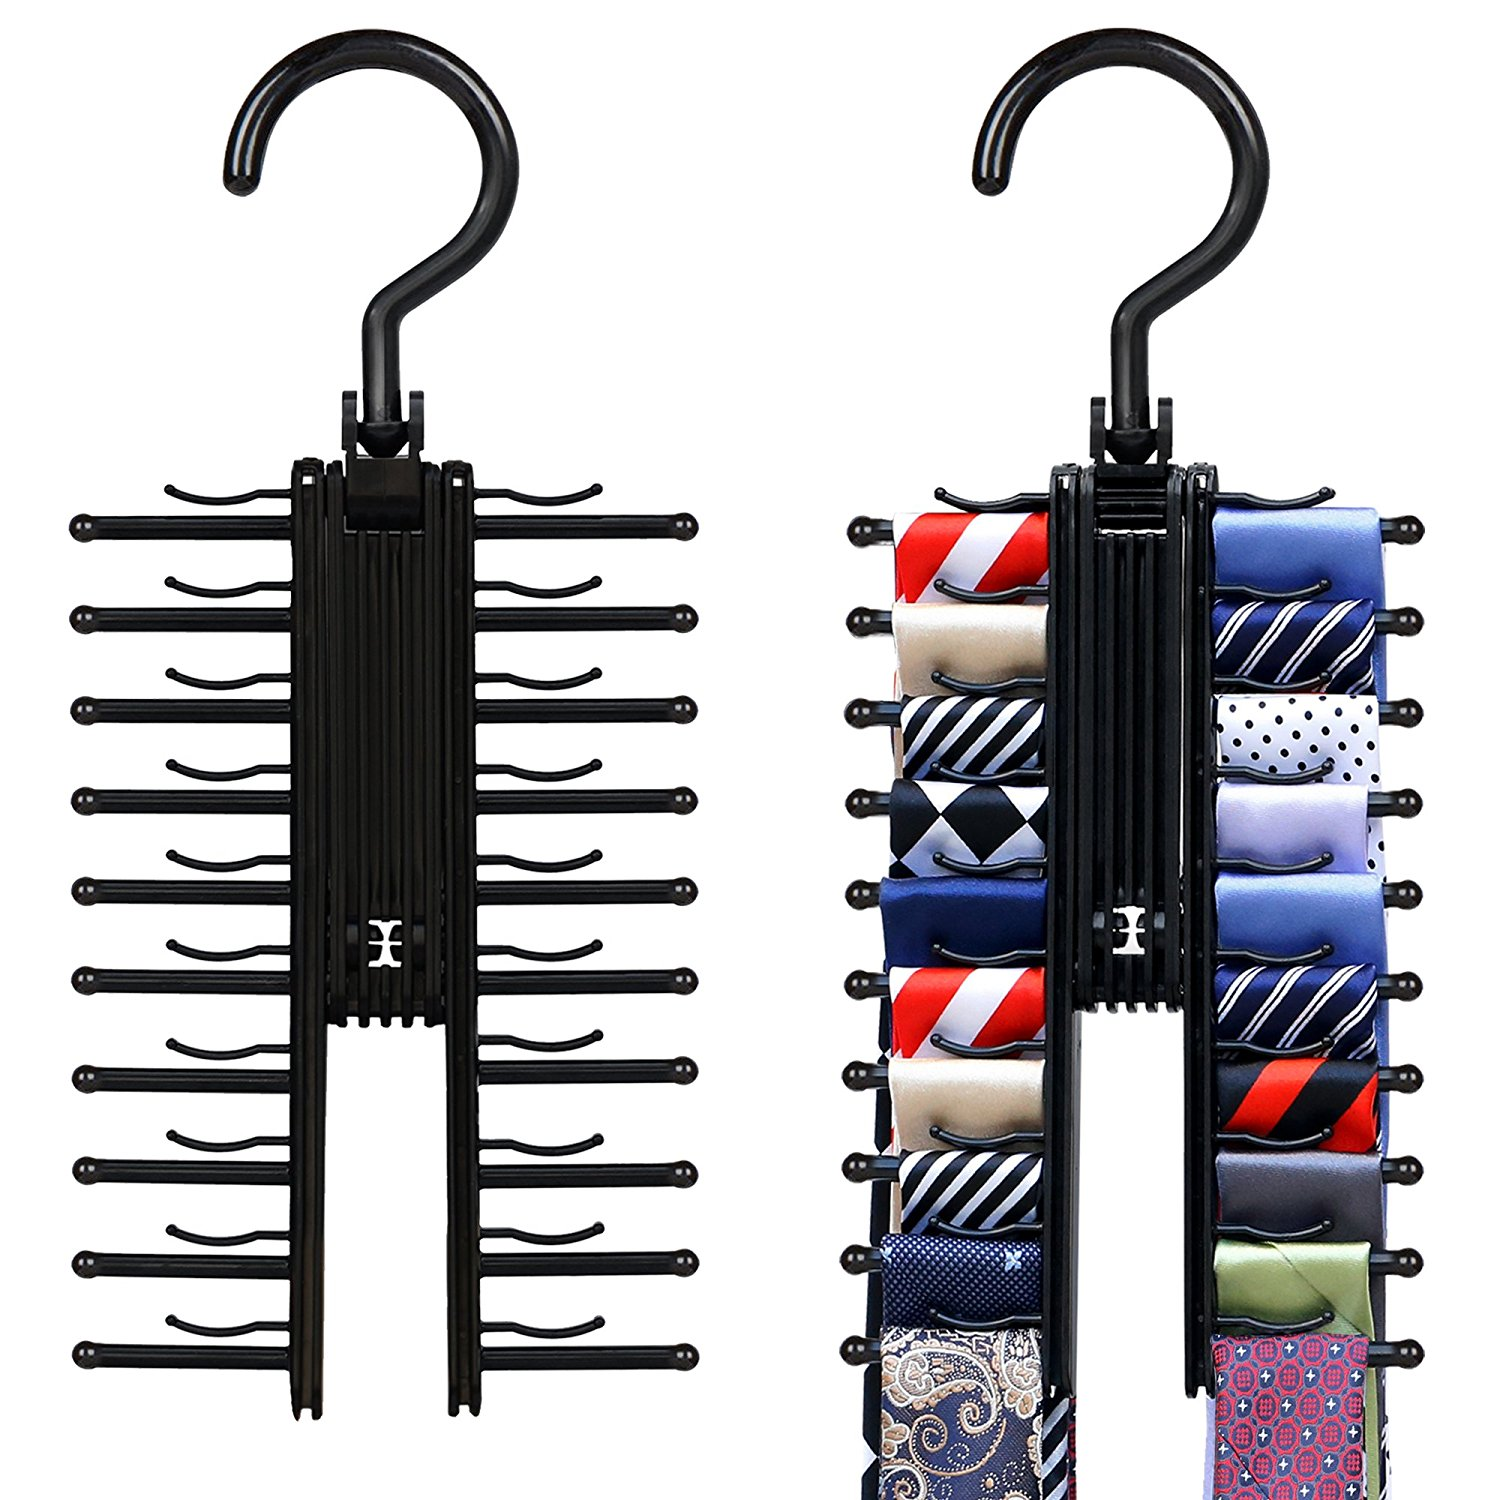 IPOW Tie Rack Hanger Compact Closet Organizer - Quality Non-Slip holds 20 Ties Adjustable Criss-Cross Design, 360 Degree Rotation with Cross X Hanger, 2 Pack, Black Friday / Cyber Monday Deal